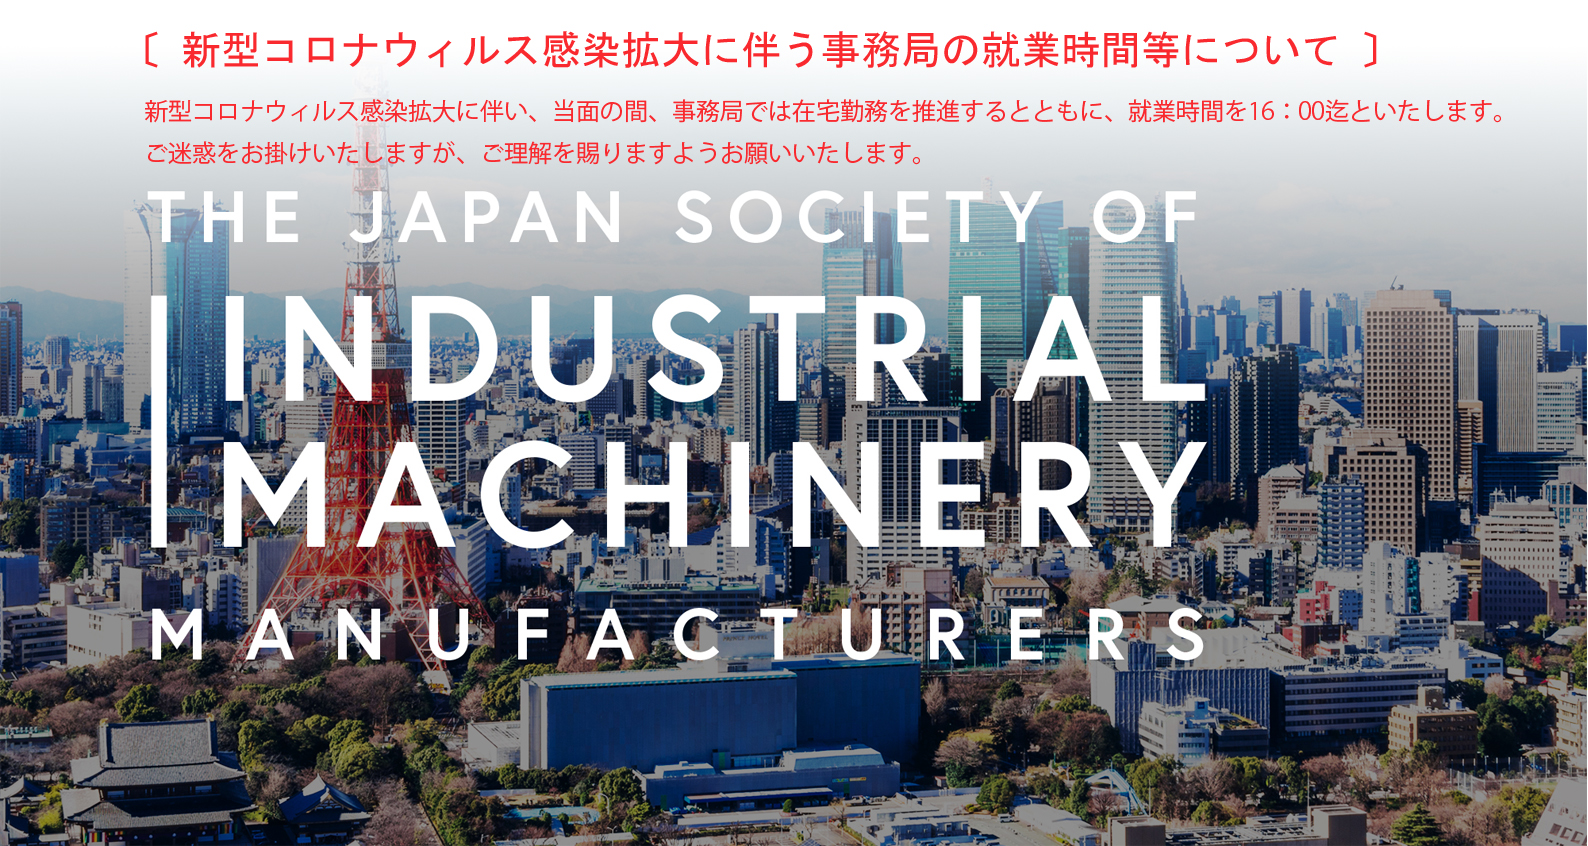 The Japan Society of Industrial Machinery Manufacturers